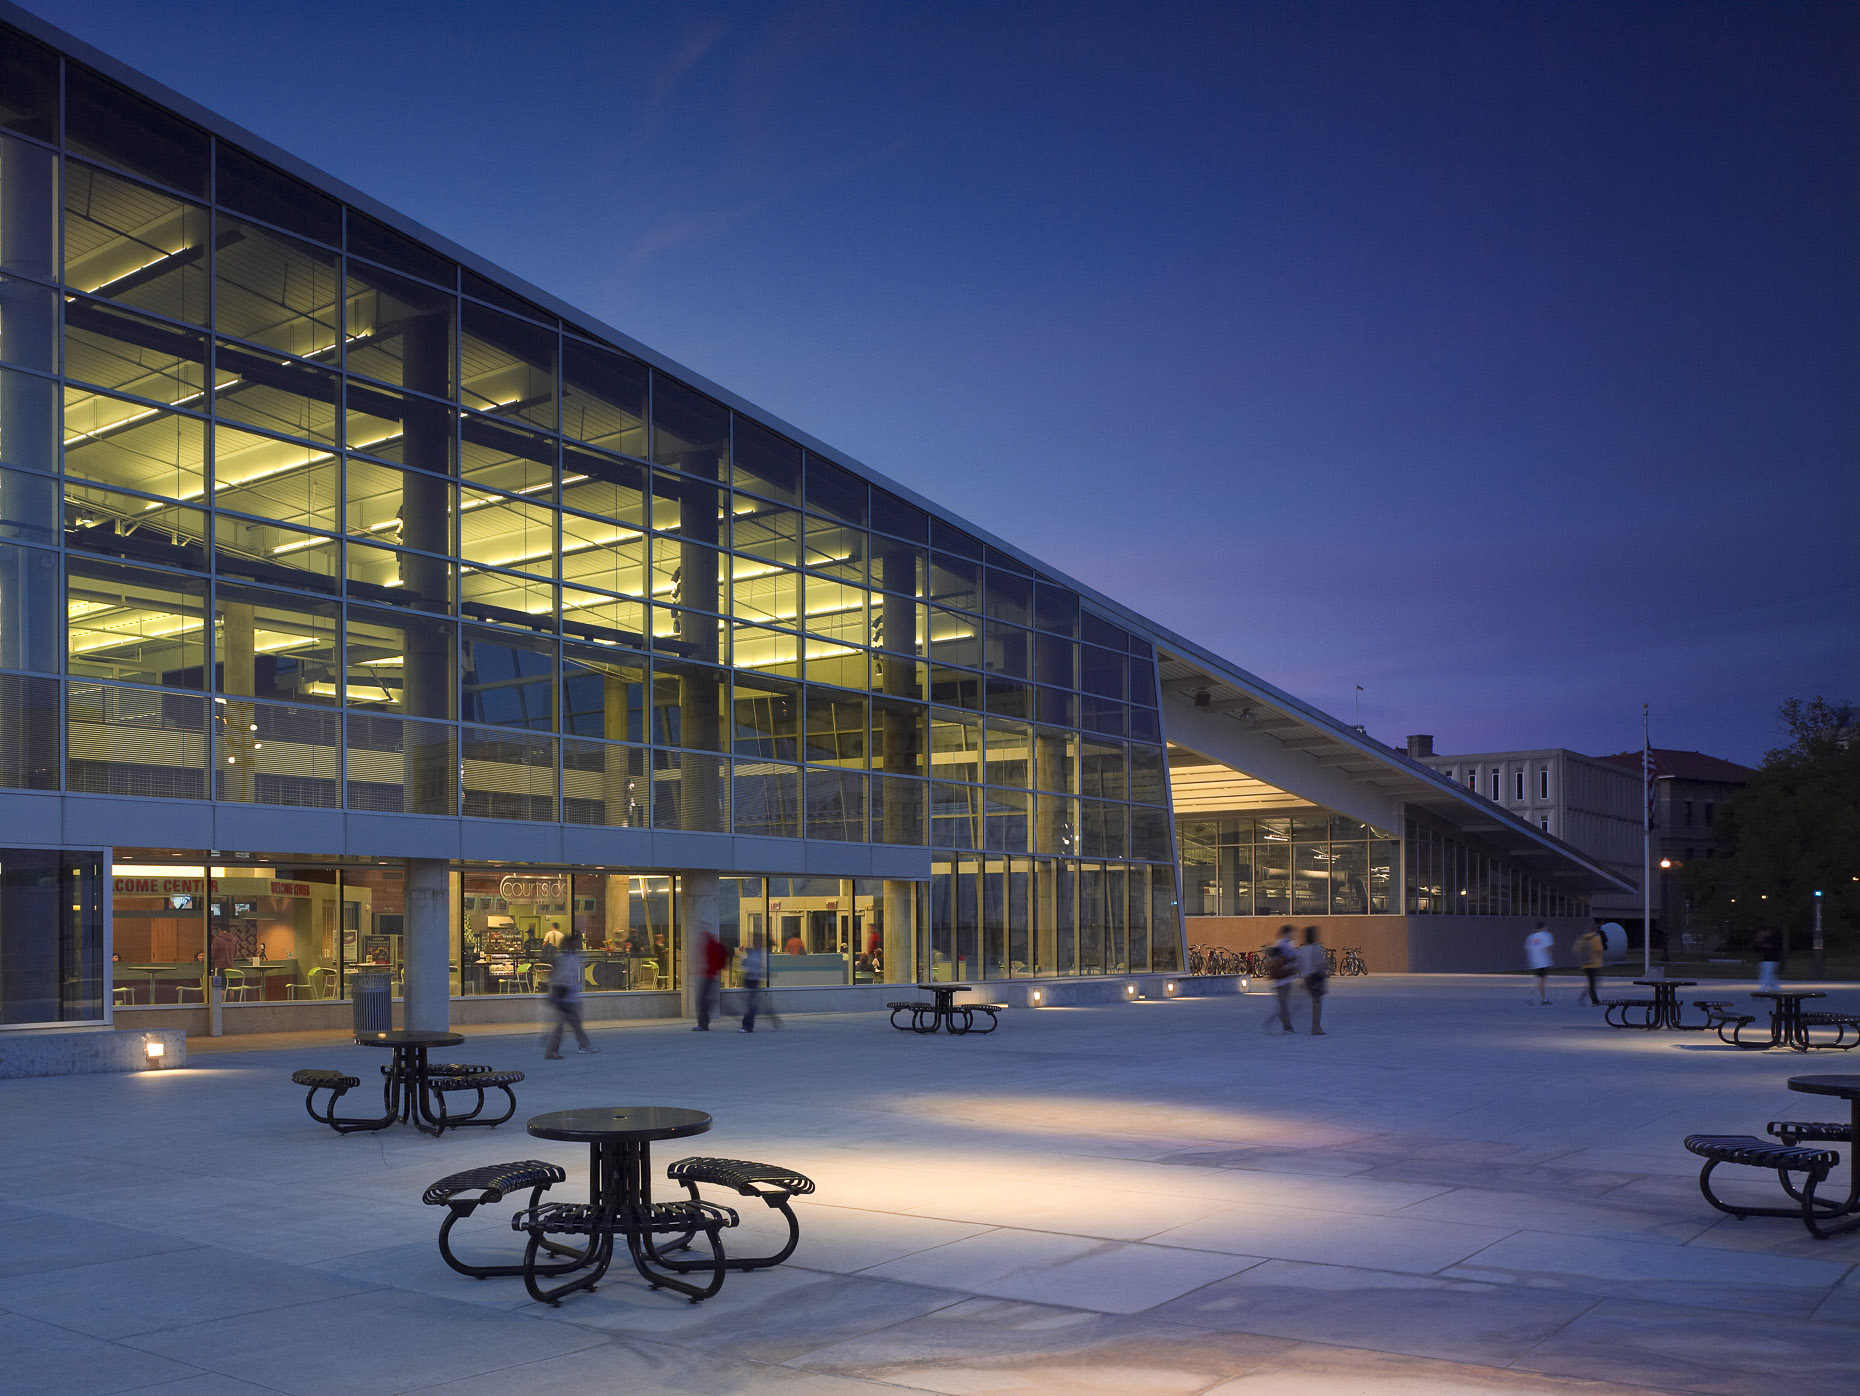 OSU RPAC by Antoine Predock & Moody Nolan photographed by Brad Feinknopf based in Columbus, Ohio